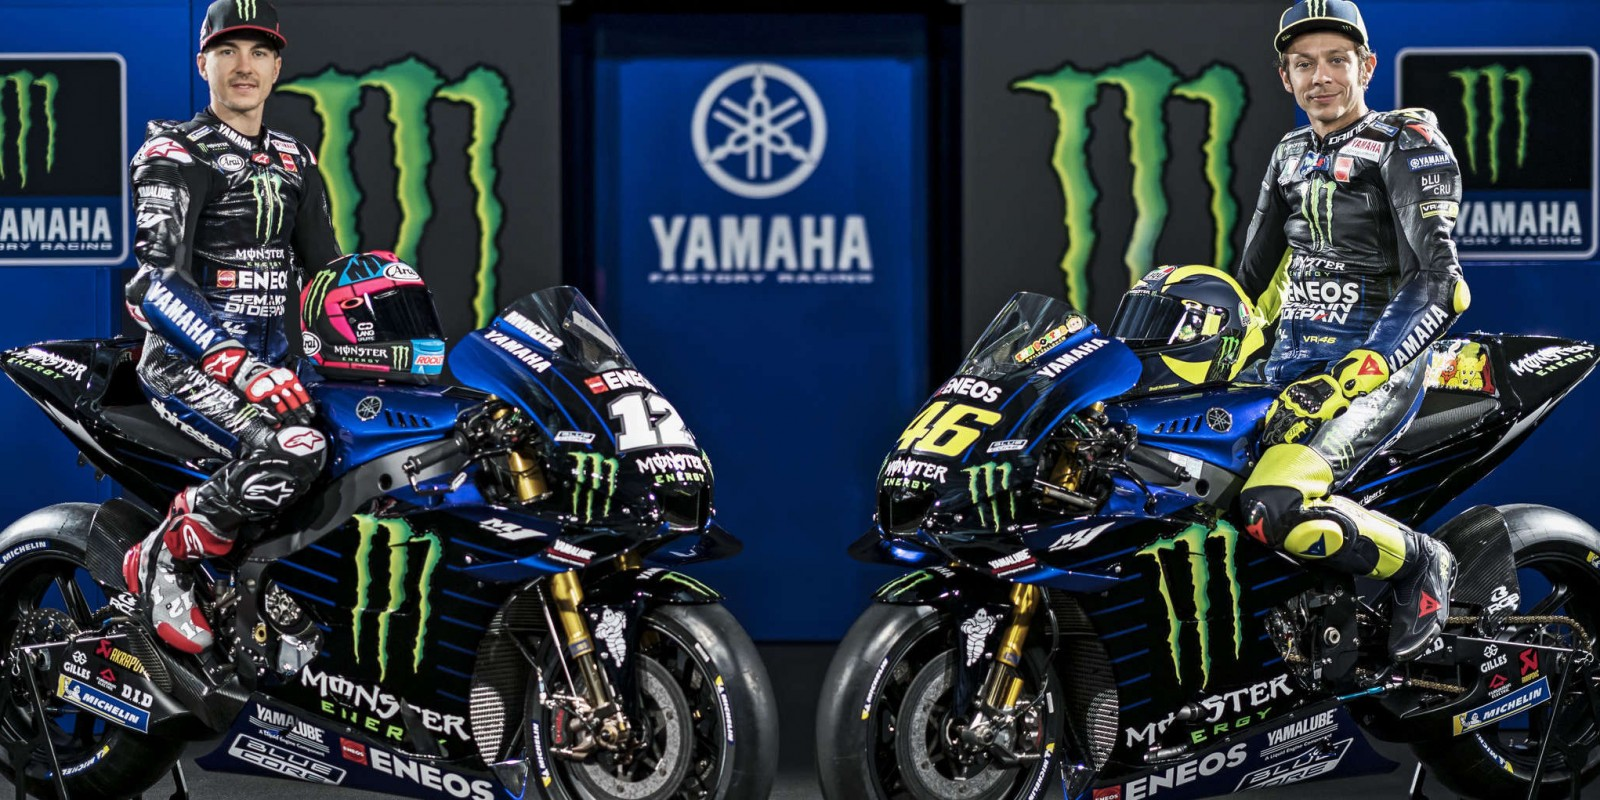 Throttles Poised Monster Energy Yamaha Motogp Expect To Fly In 2019